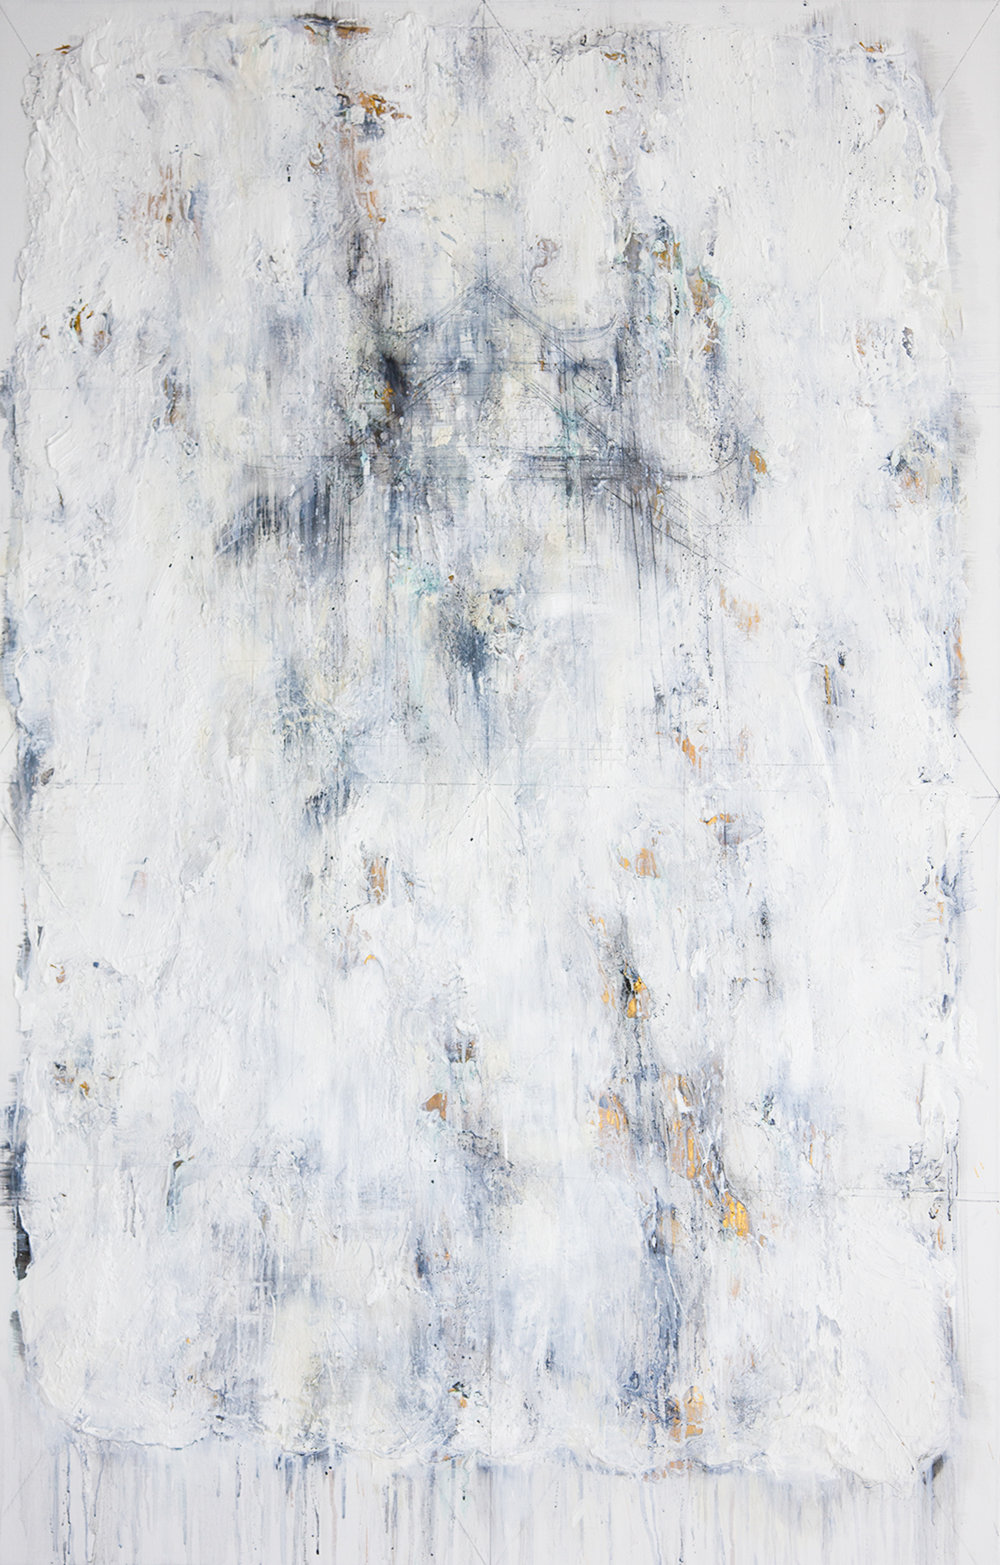 Foggy Days At The Lake #1, 2016, Oil, Acrylic and Charcoal on Canvas, 140 x 90 cm, HA Manh Thang